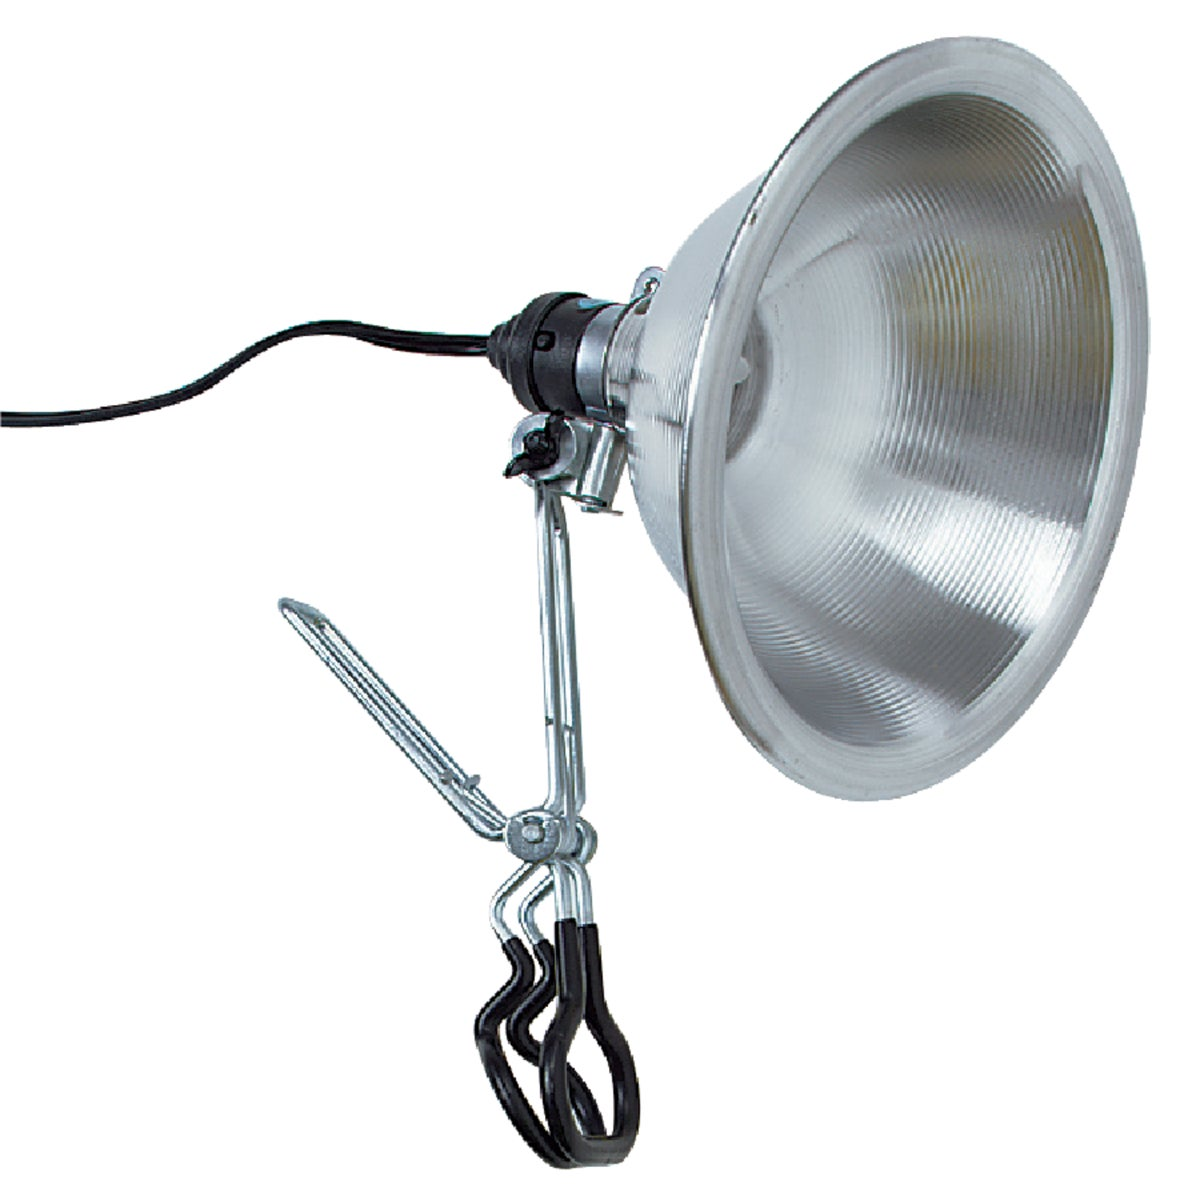 Do it 150W 8-1/2 In. Clamp Lamp